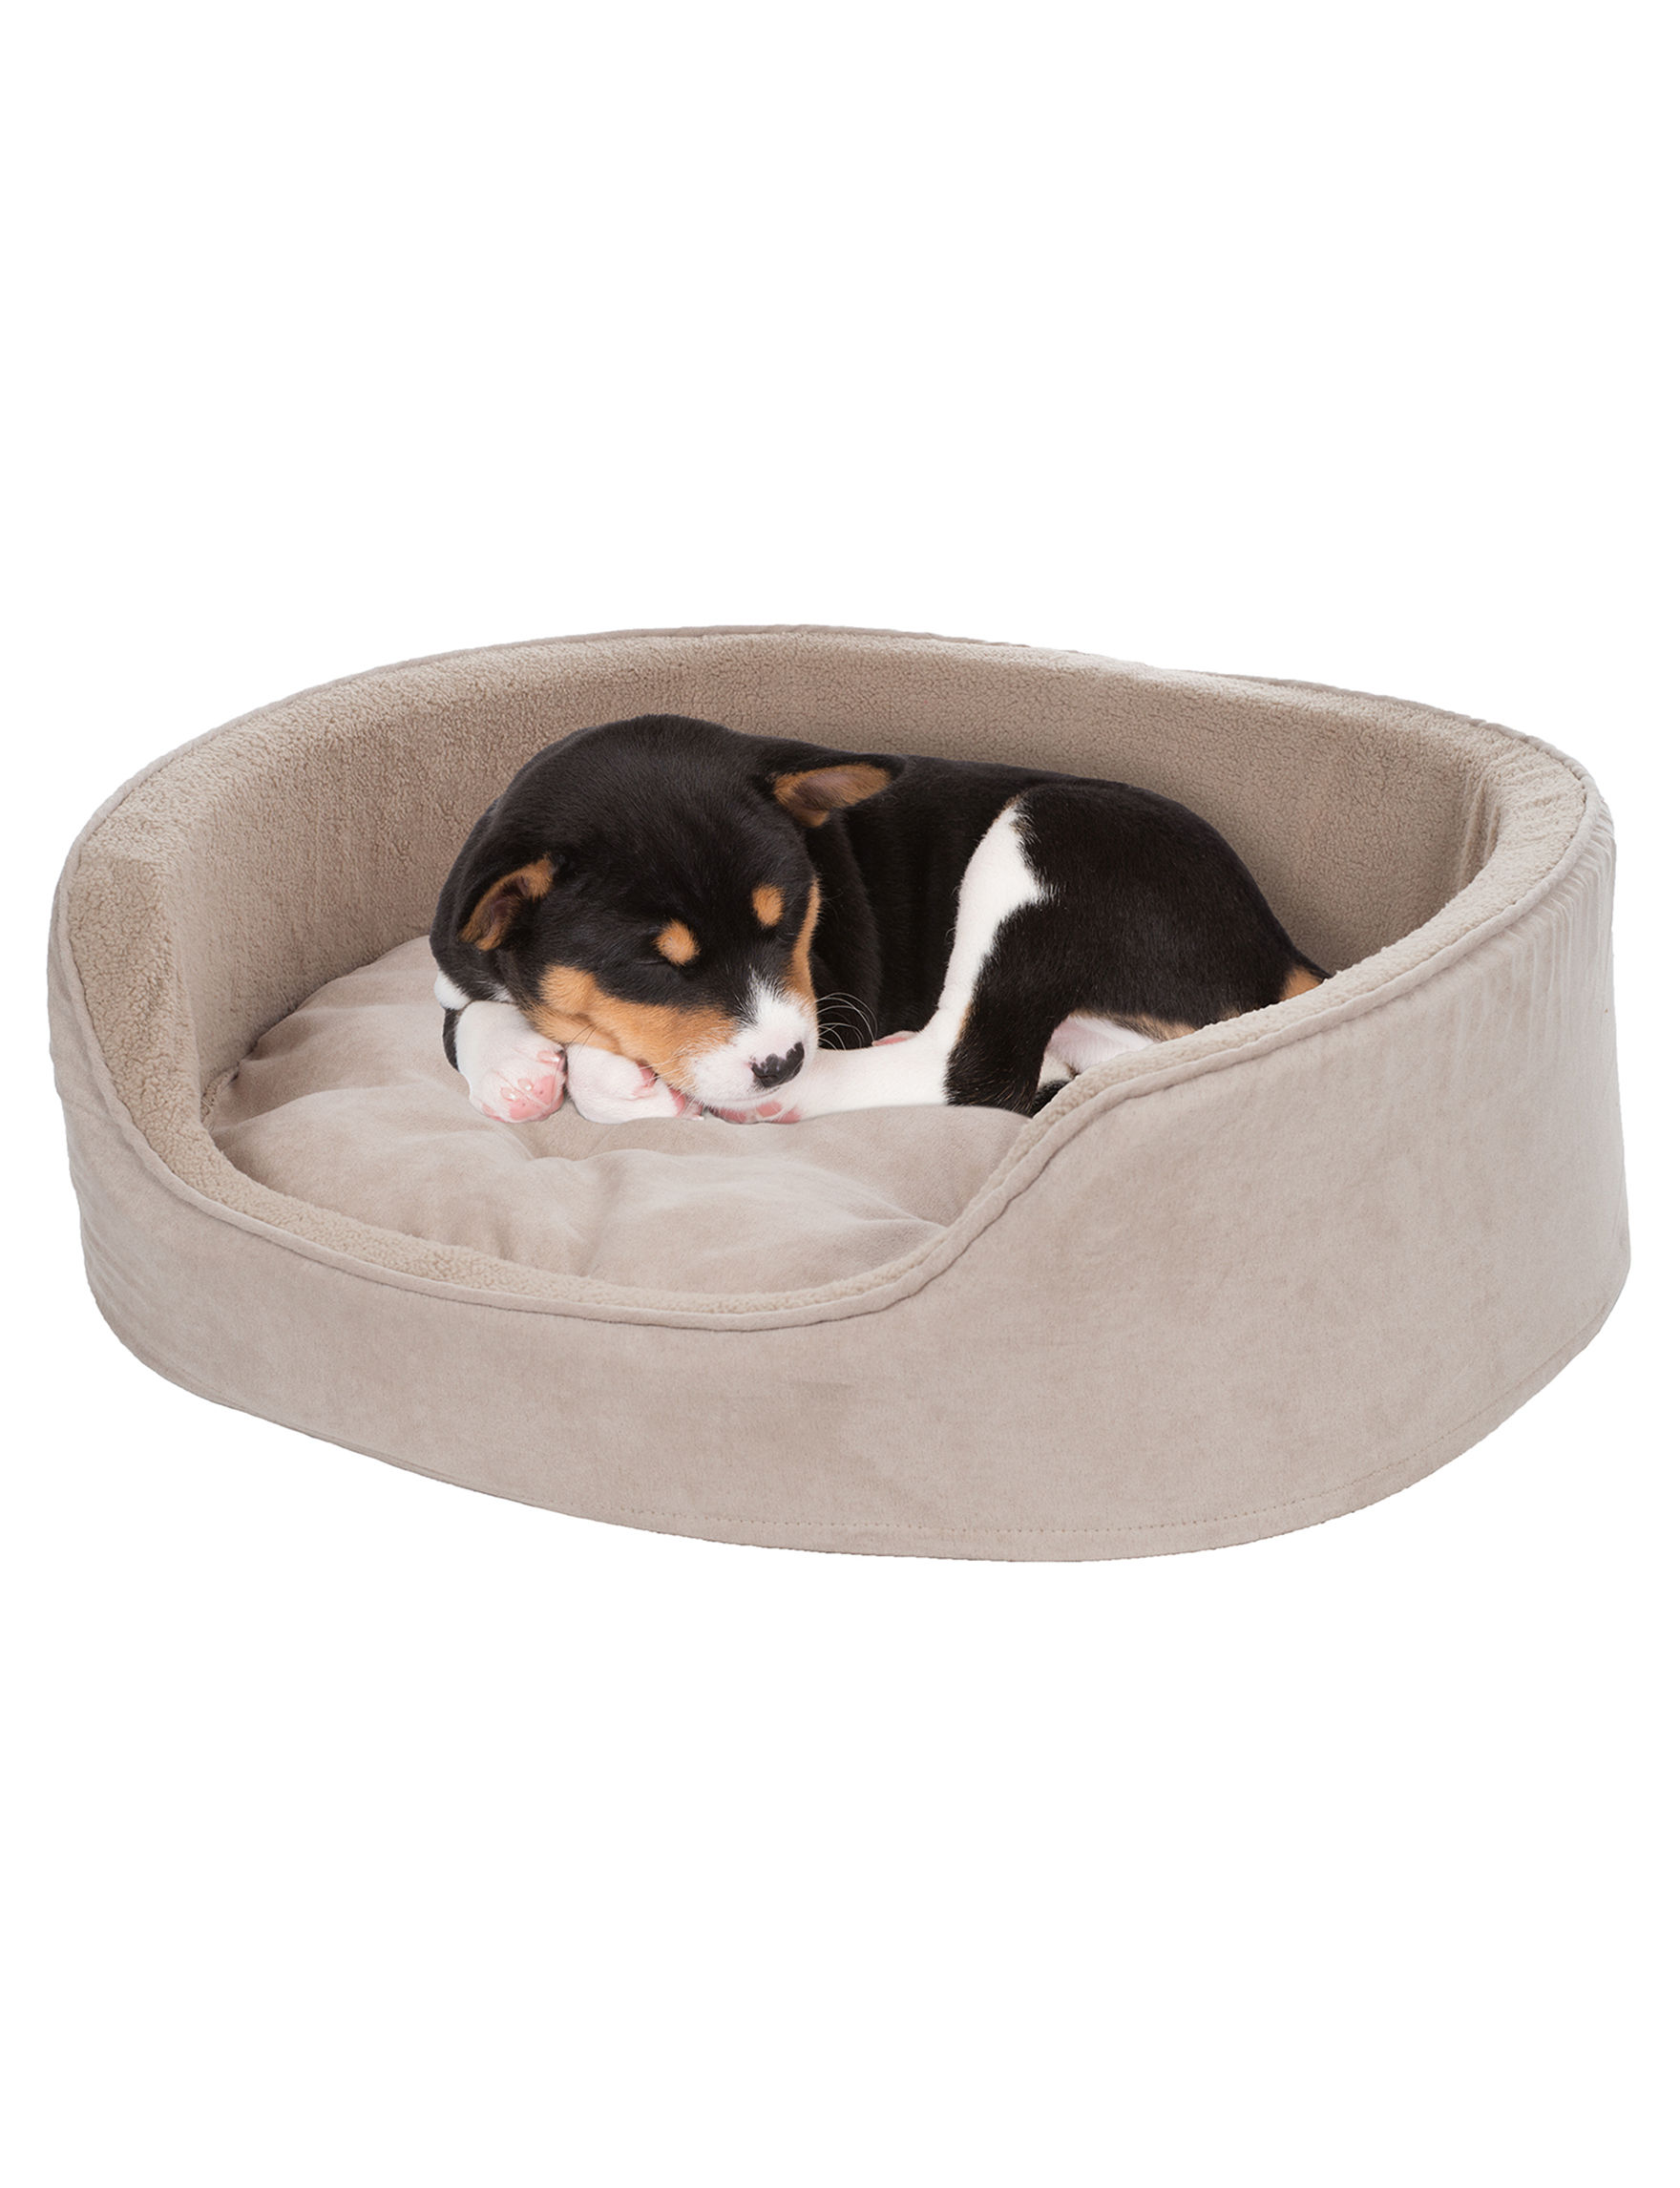 Petmaker Clay Accessories Pet Beds & Houses